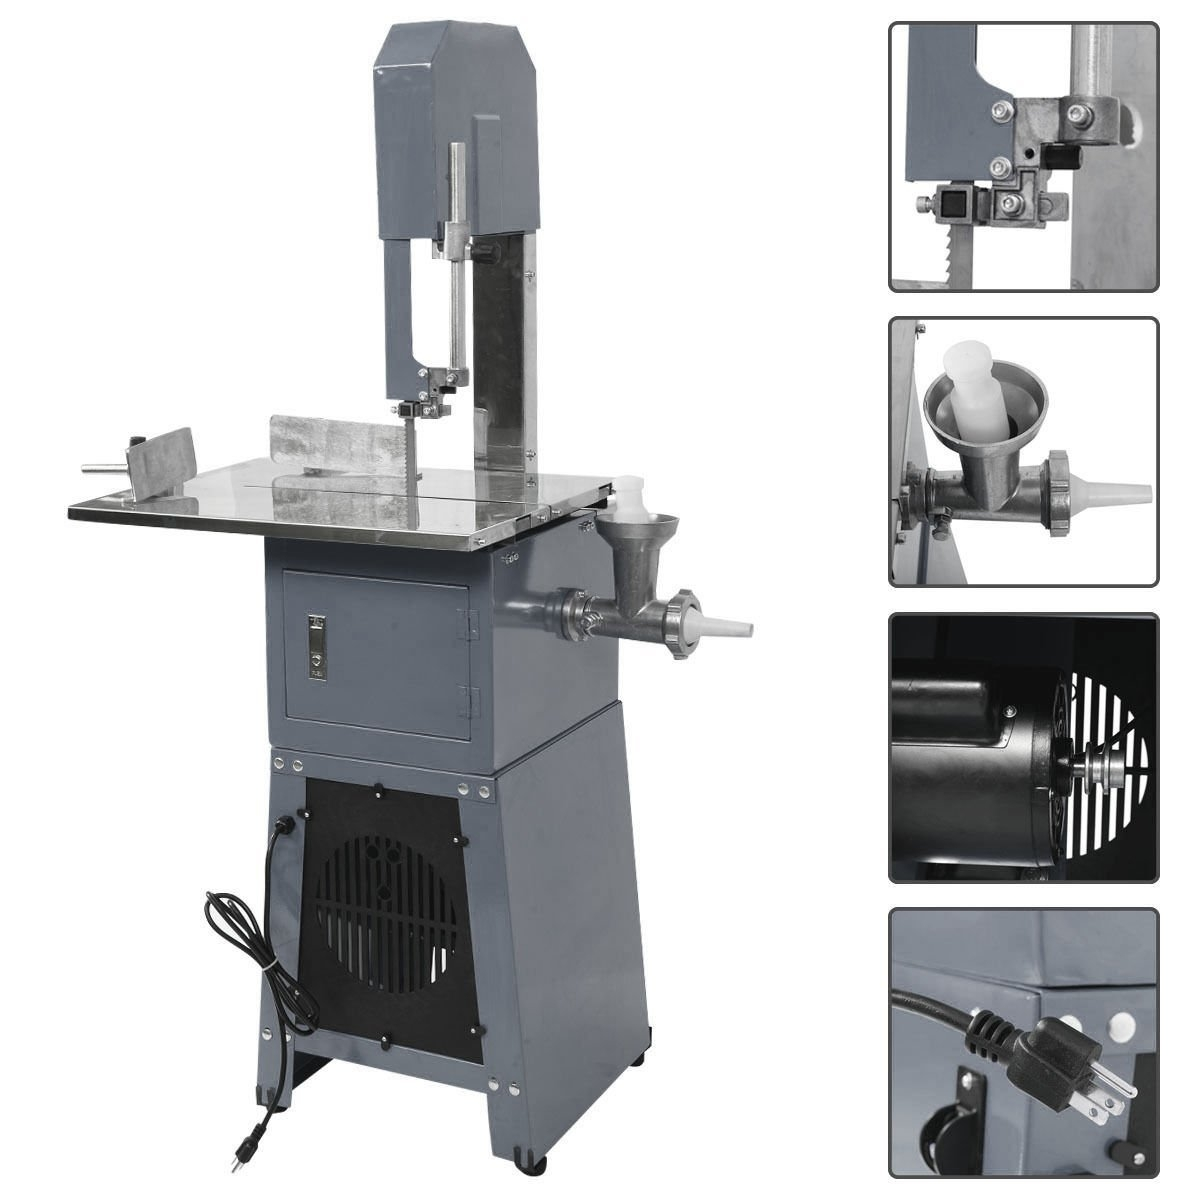 New Electric 550W Stand Up Butcher Meat Band Saw & Grinder Processor Sausage Gray by MTN Gearsmith